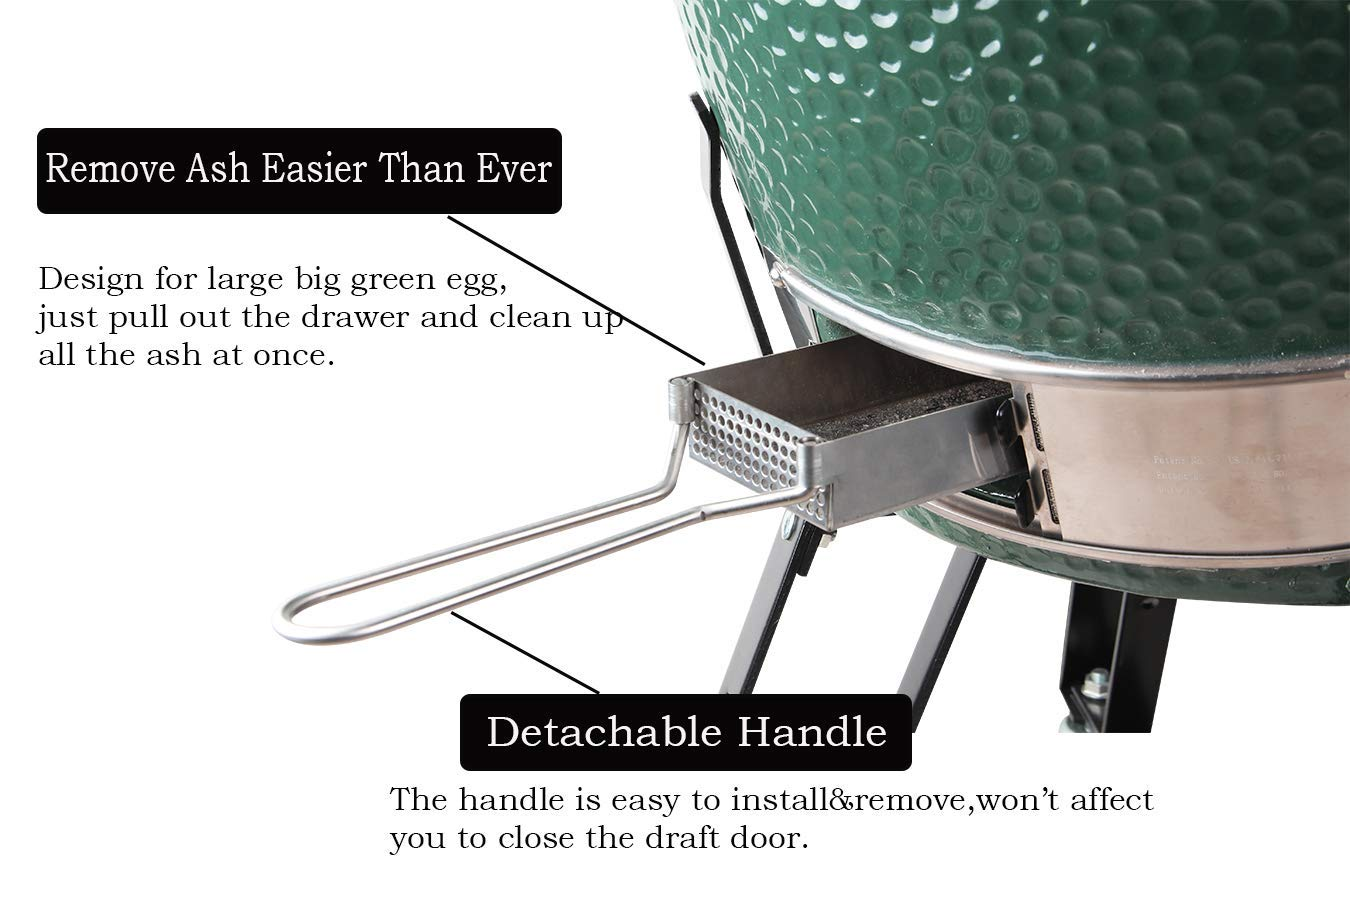 Dracarys Big Green Egg Accessories Ash Tool Slid Out ash Drawer Stainless Steel for Large Big Green Egg Accessories BGE Accessories Green Egg Replacement Parts ash Clean Tool